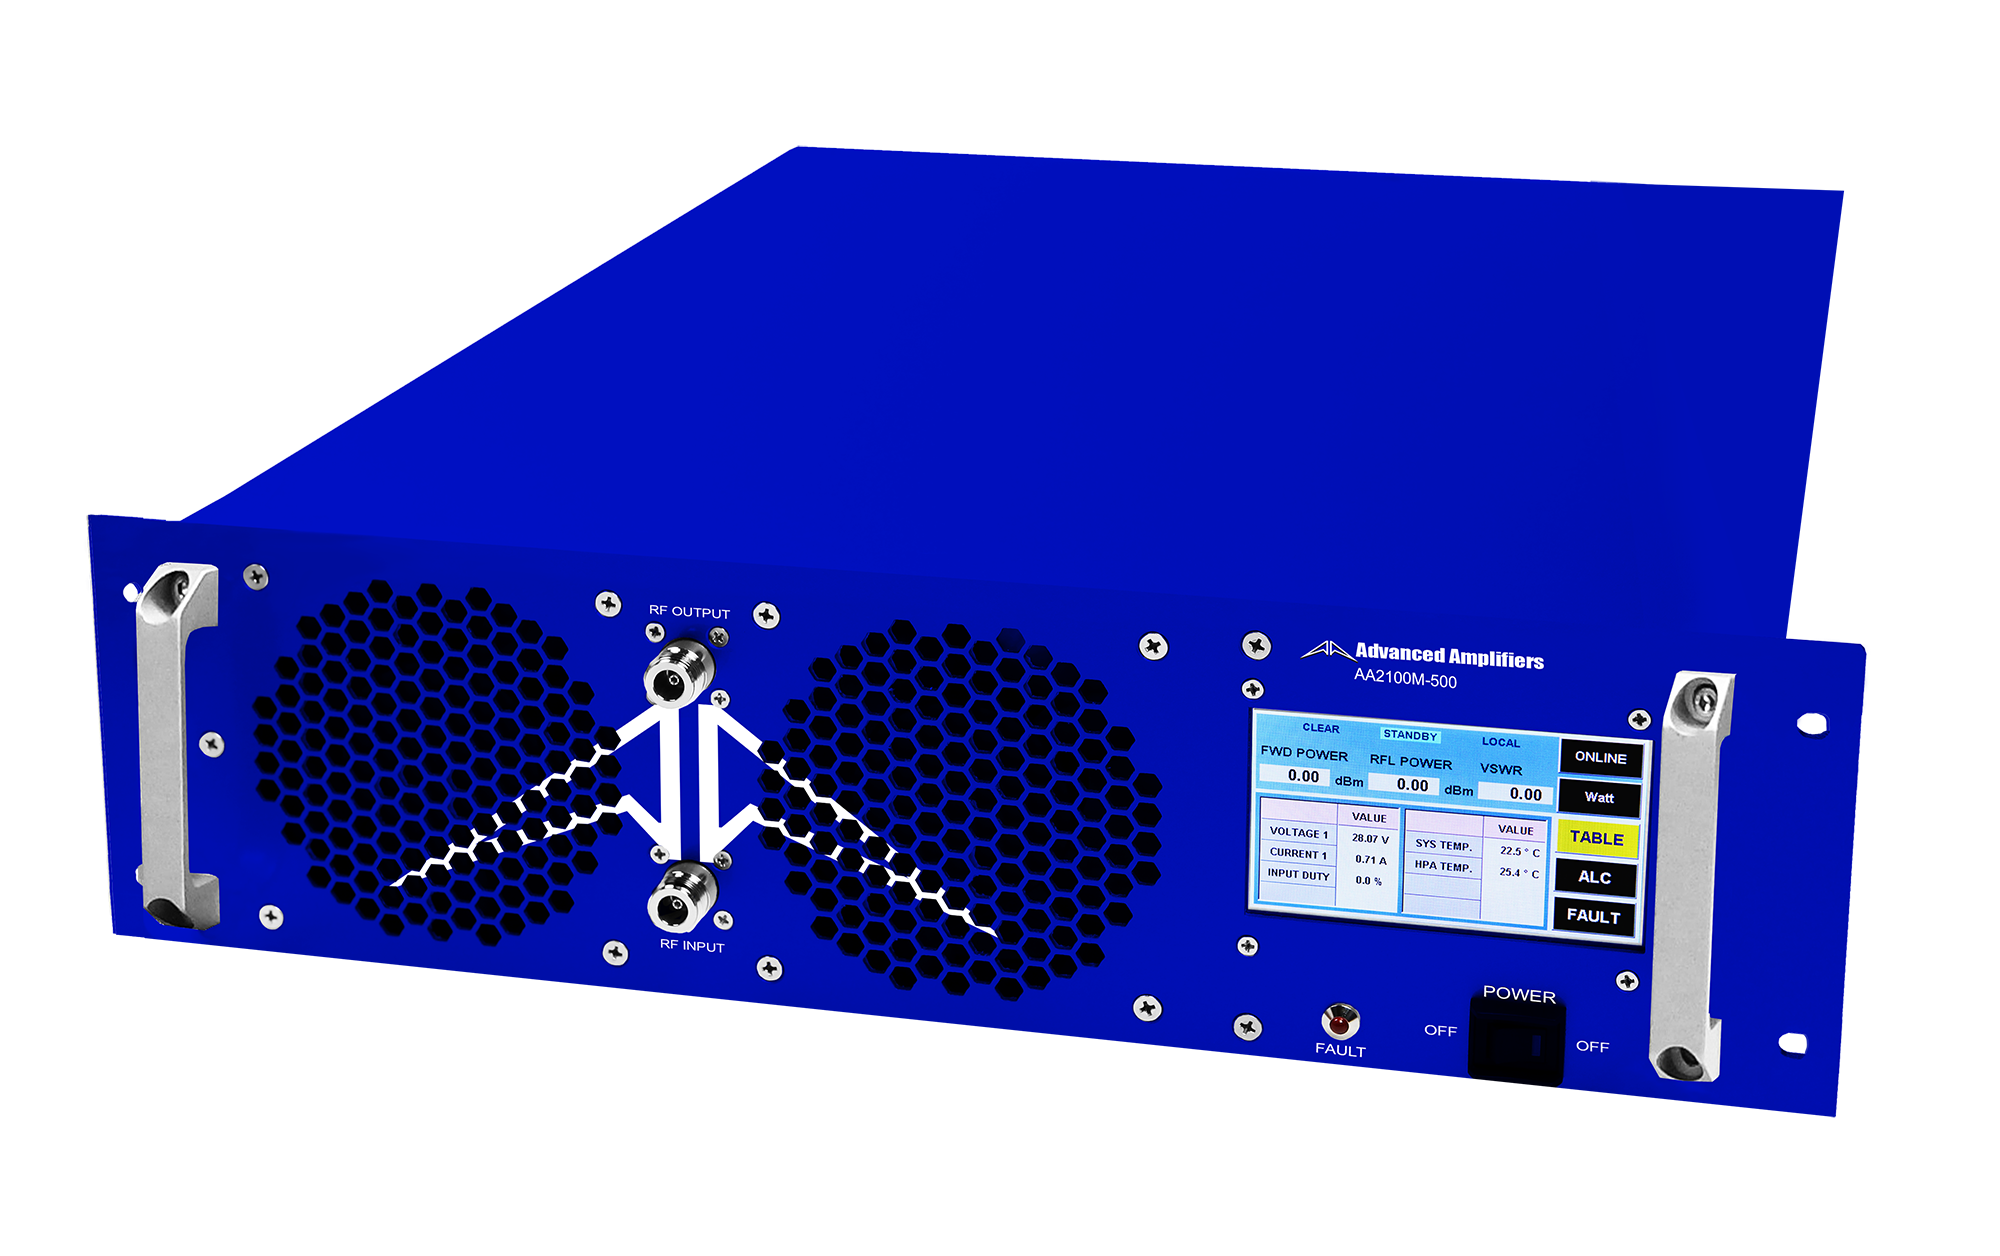 Advanced Amplifiers AA-2100M-500